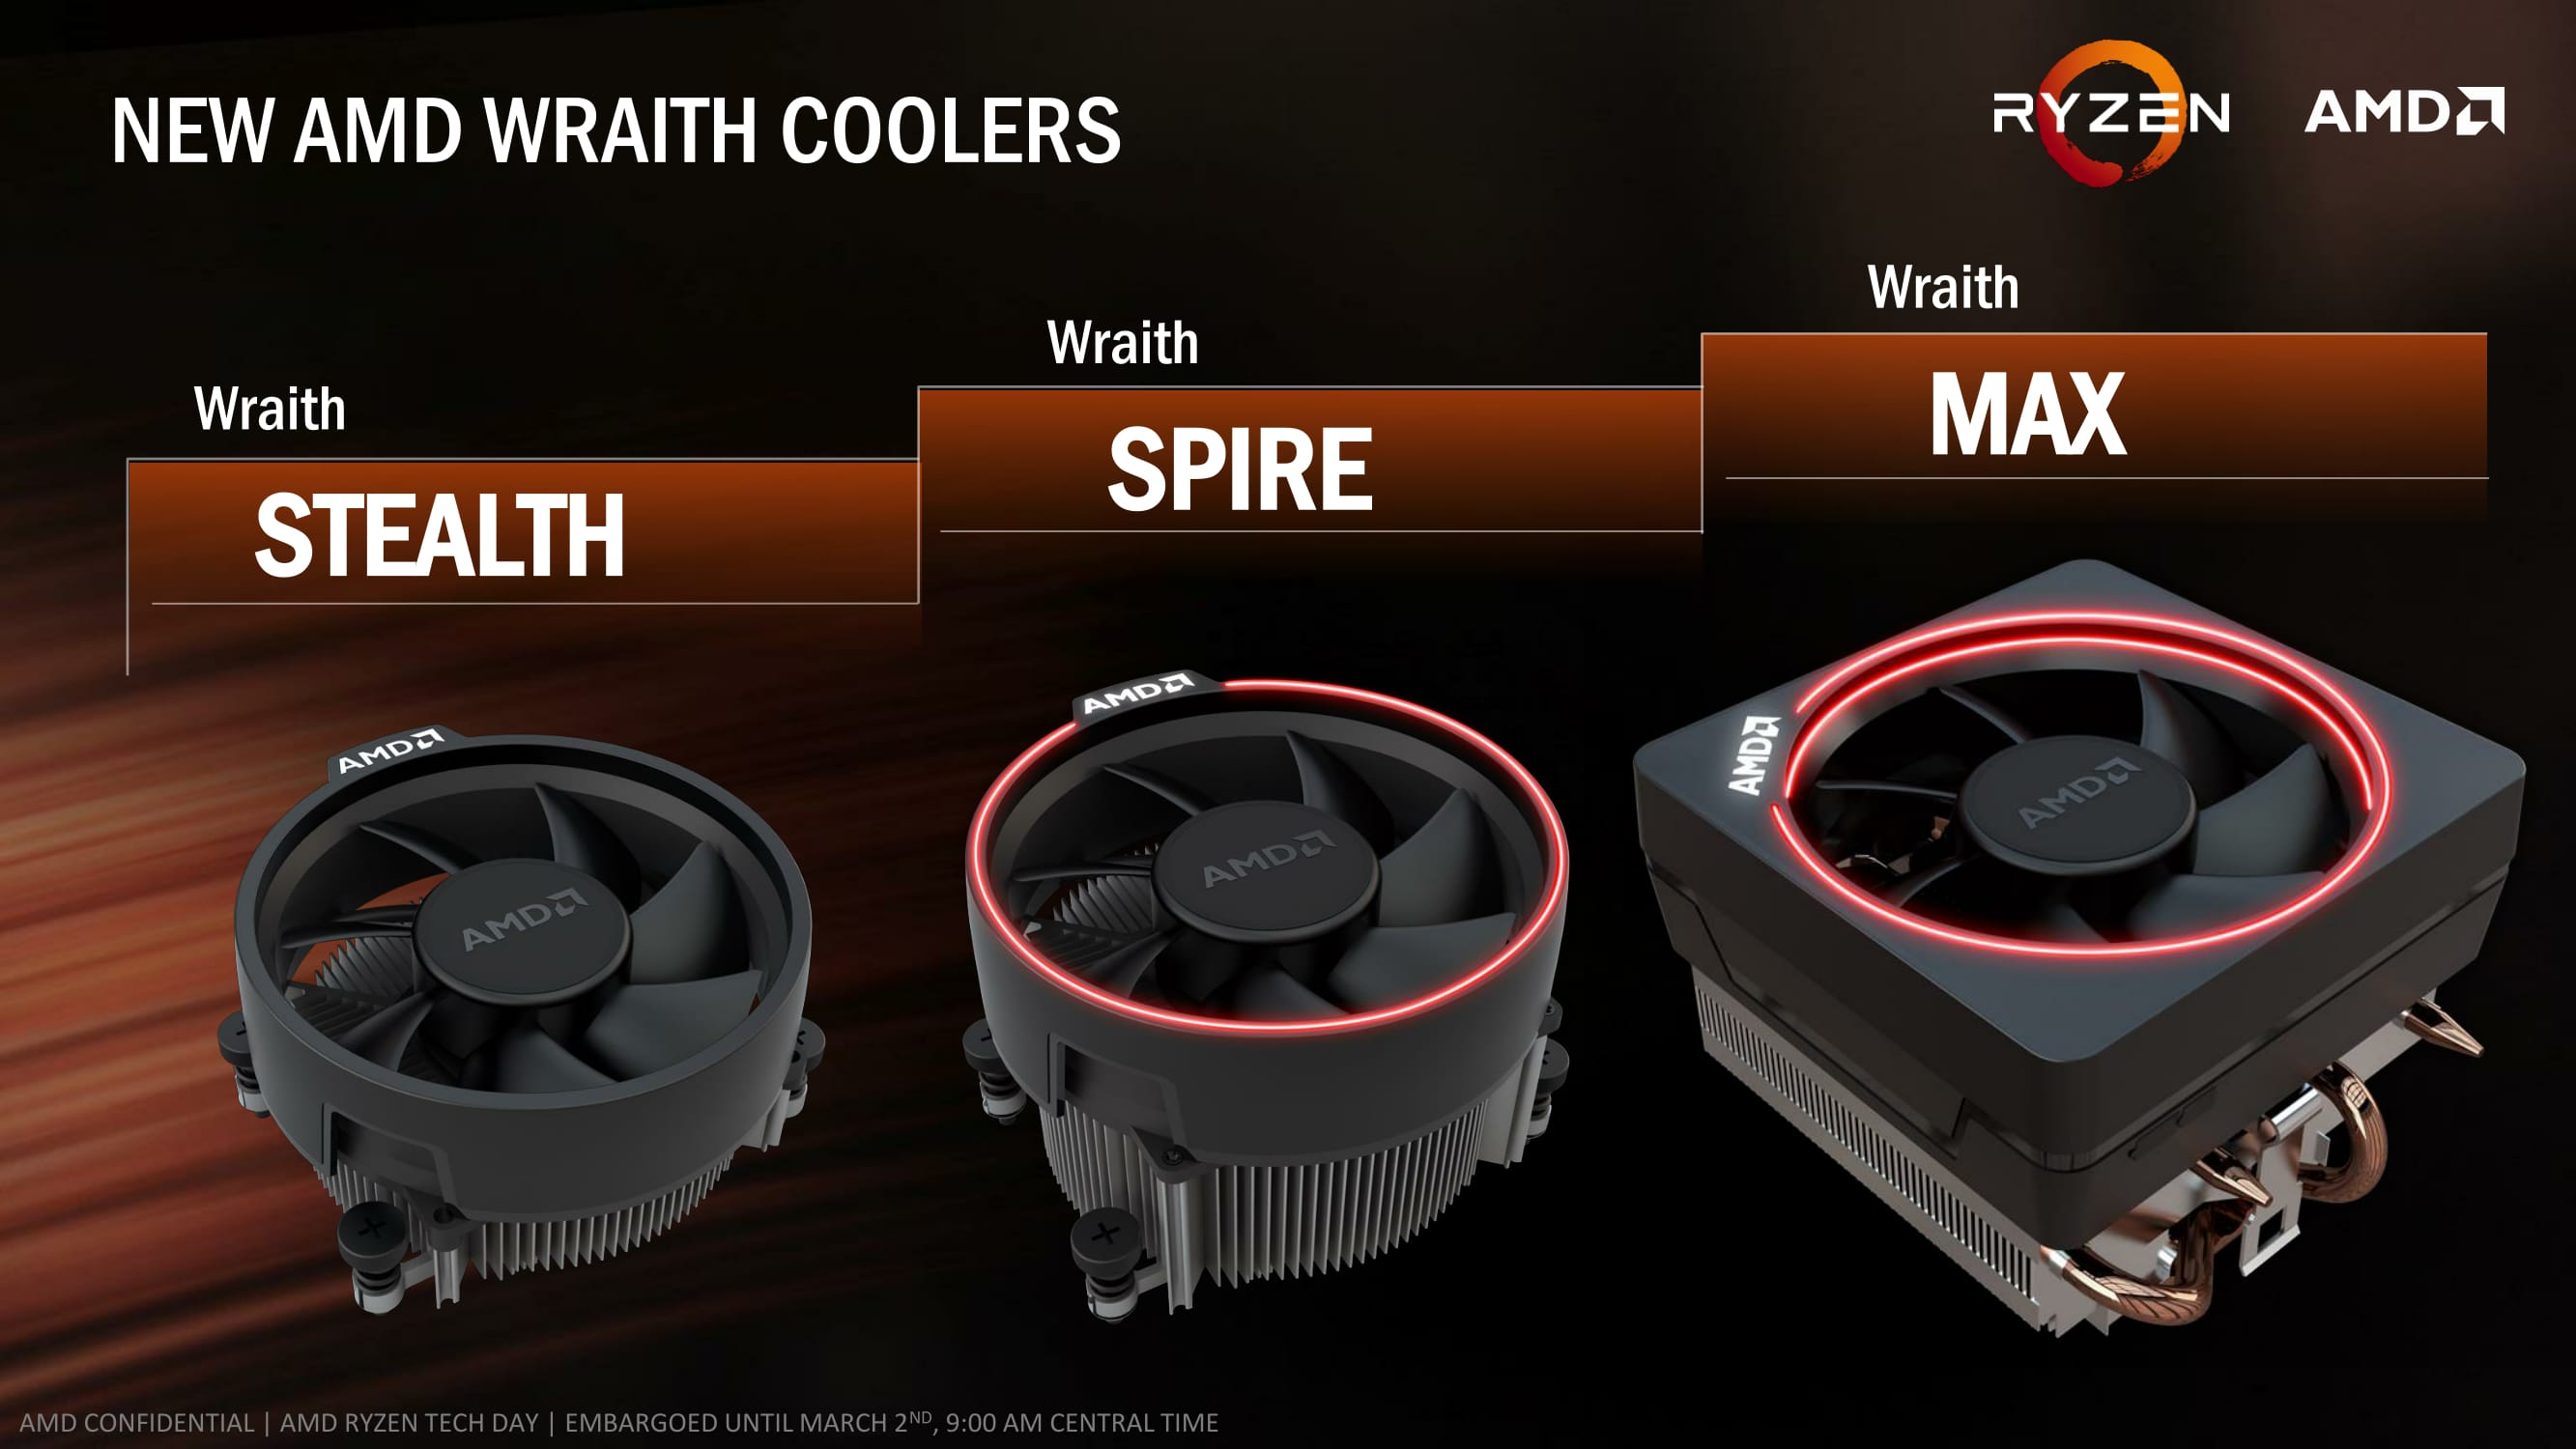 Amd Stock Coolers And Memory Wraith V2 And Ddr4 The Amd Zen And Ryzen 7 Review A Deep Dive On 1800x 1700x And 1700